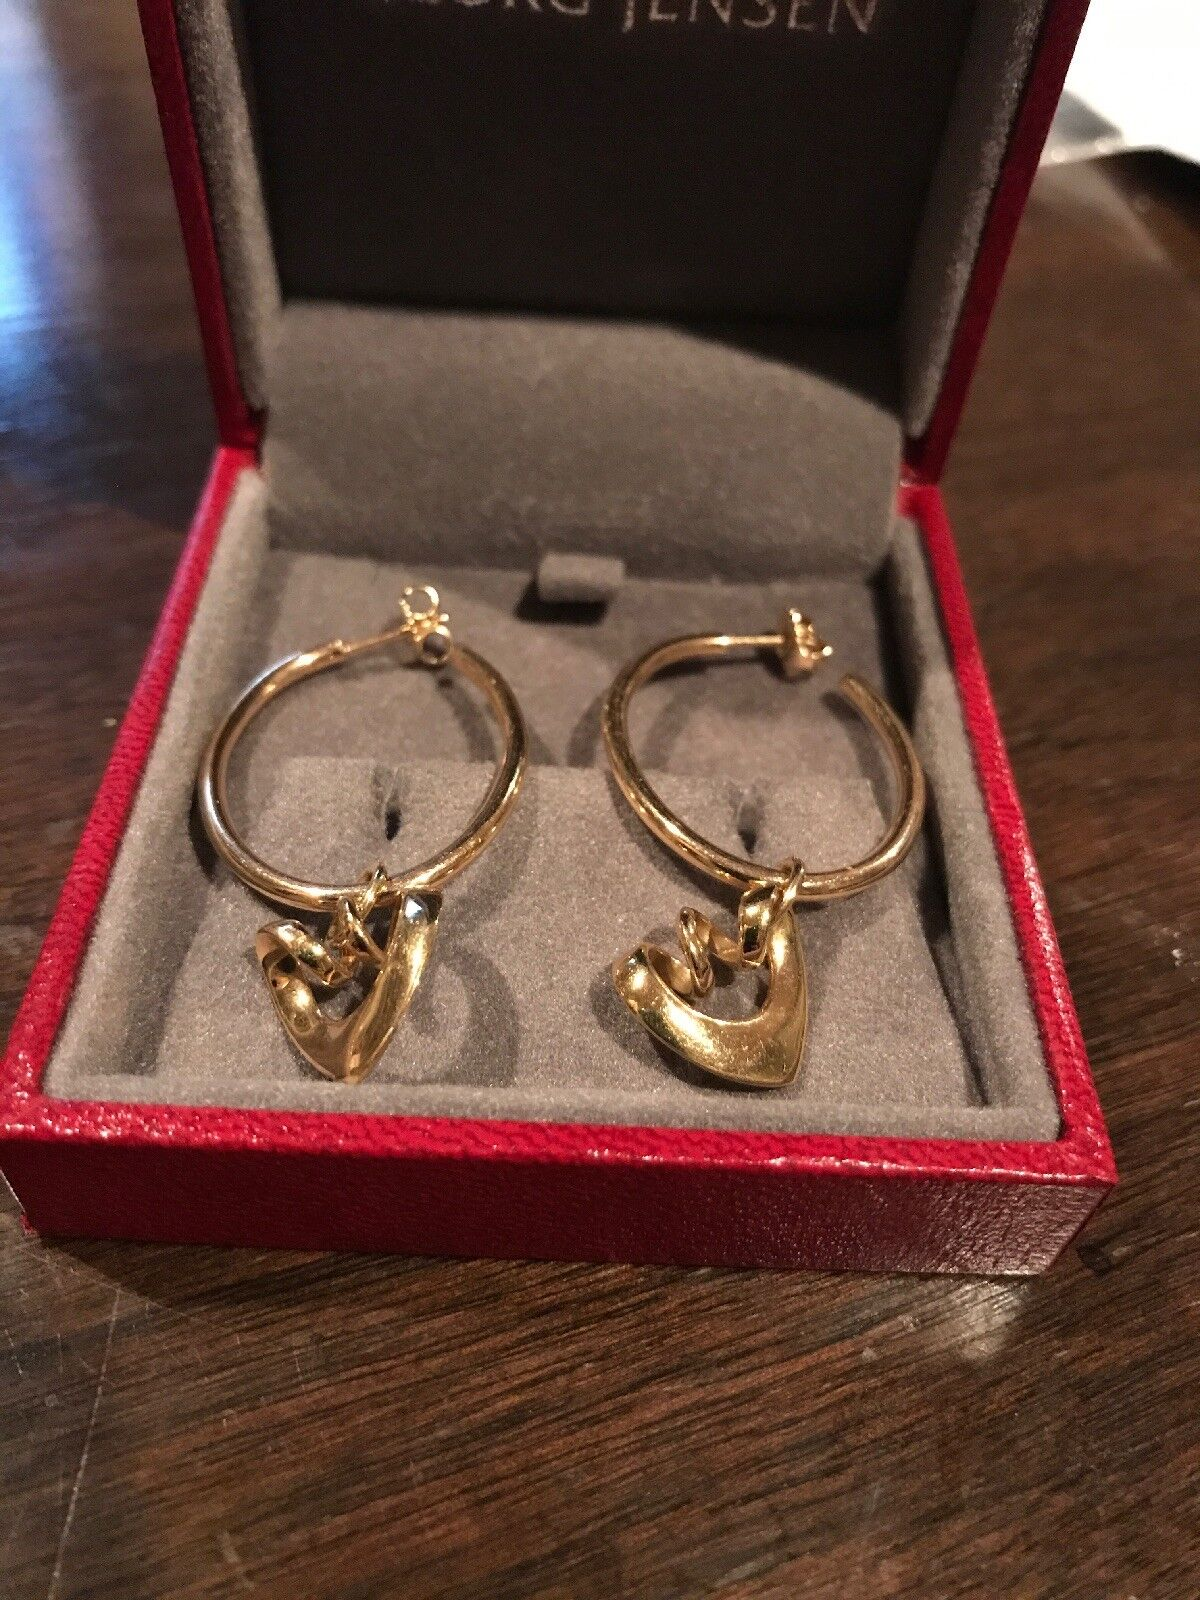 GEORG JENSEN gold 18k  drop earrings With Hearts - 2003